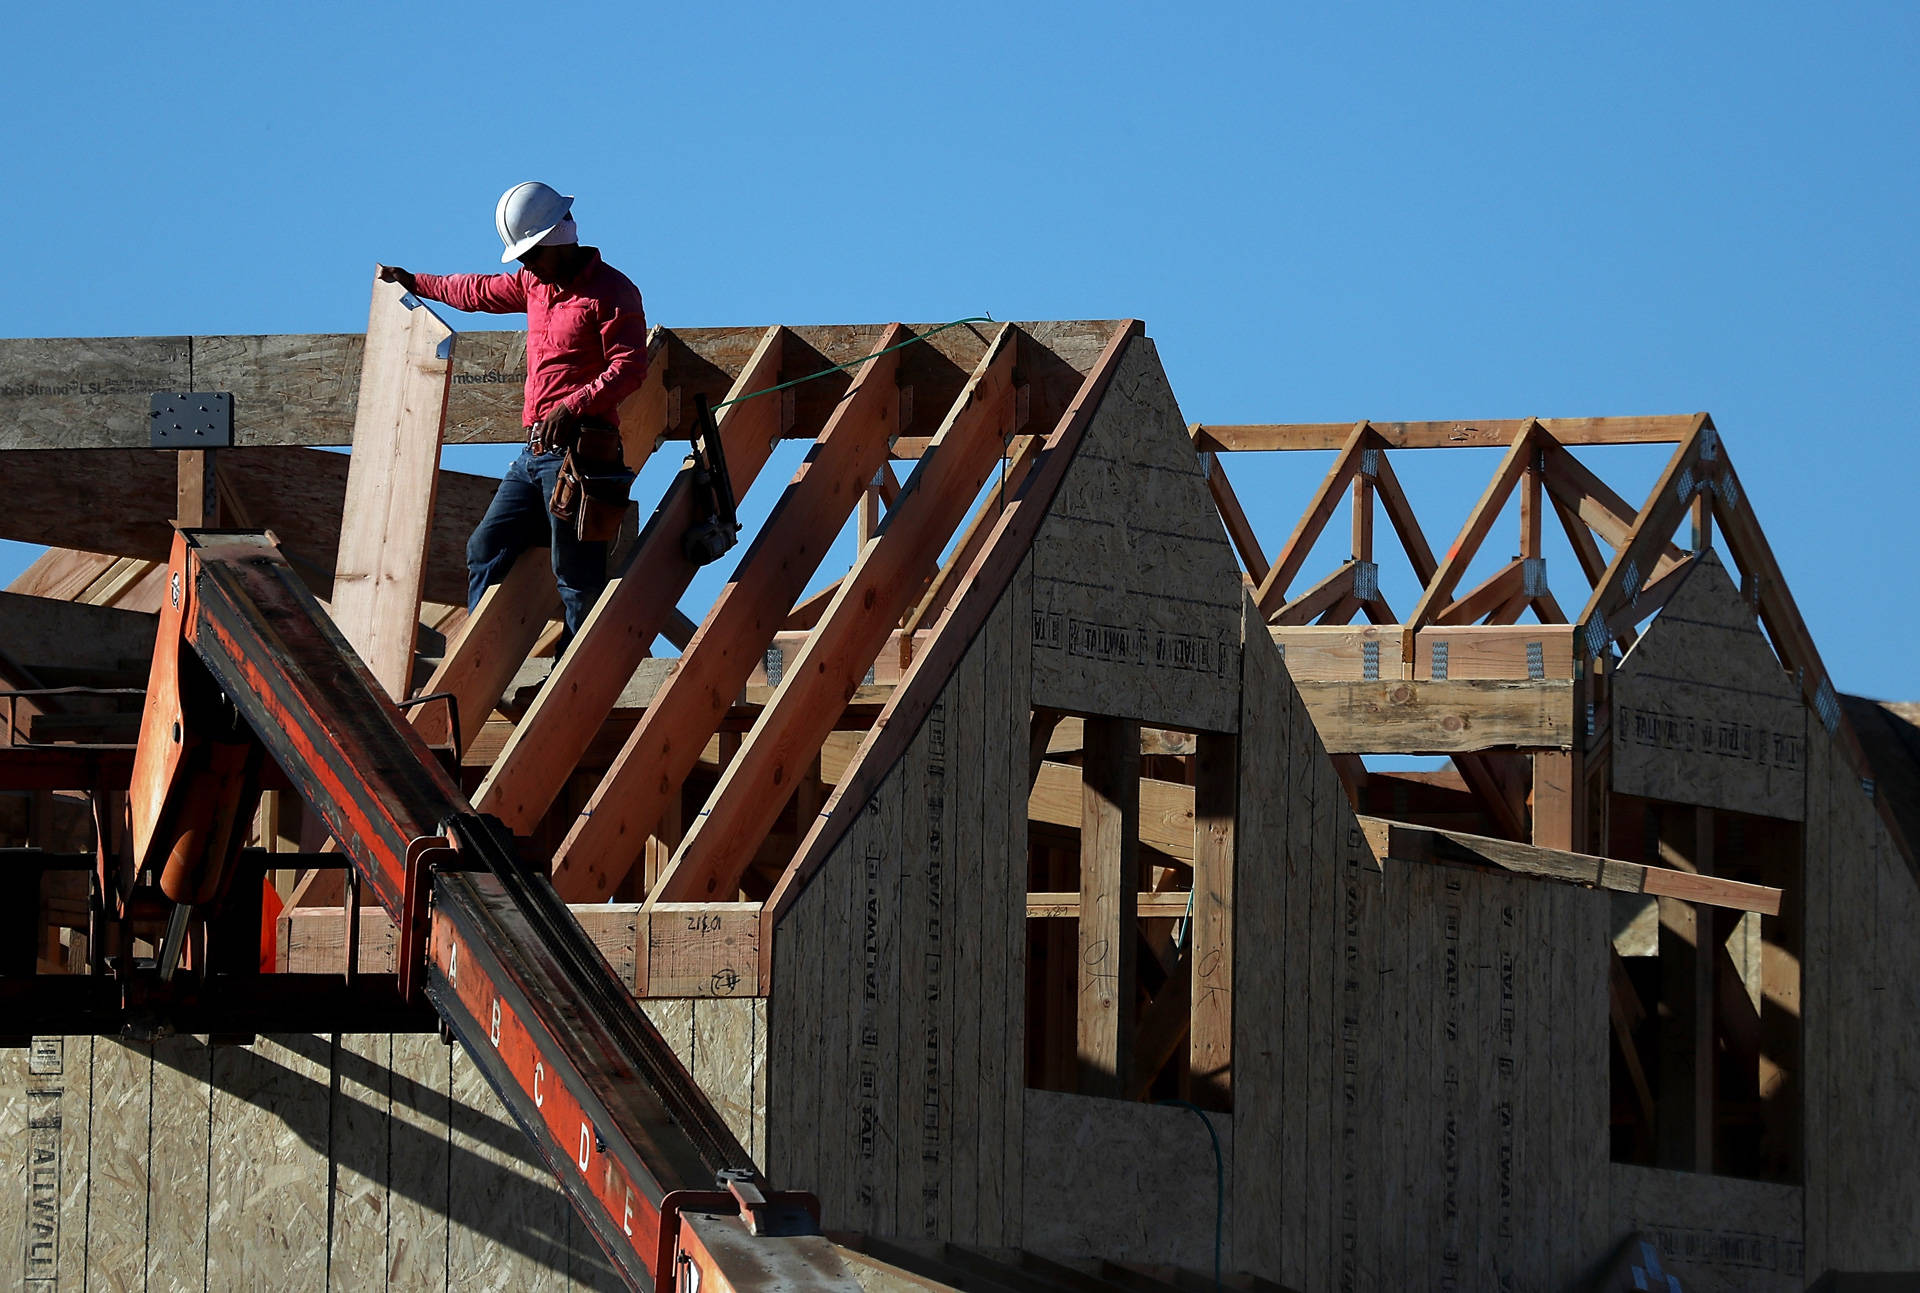 The bond measure addresses one cause of California's affordable housing crisis: a lack of state funding to construct homes for low-income residents. Justin Sullivan/Getty Images